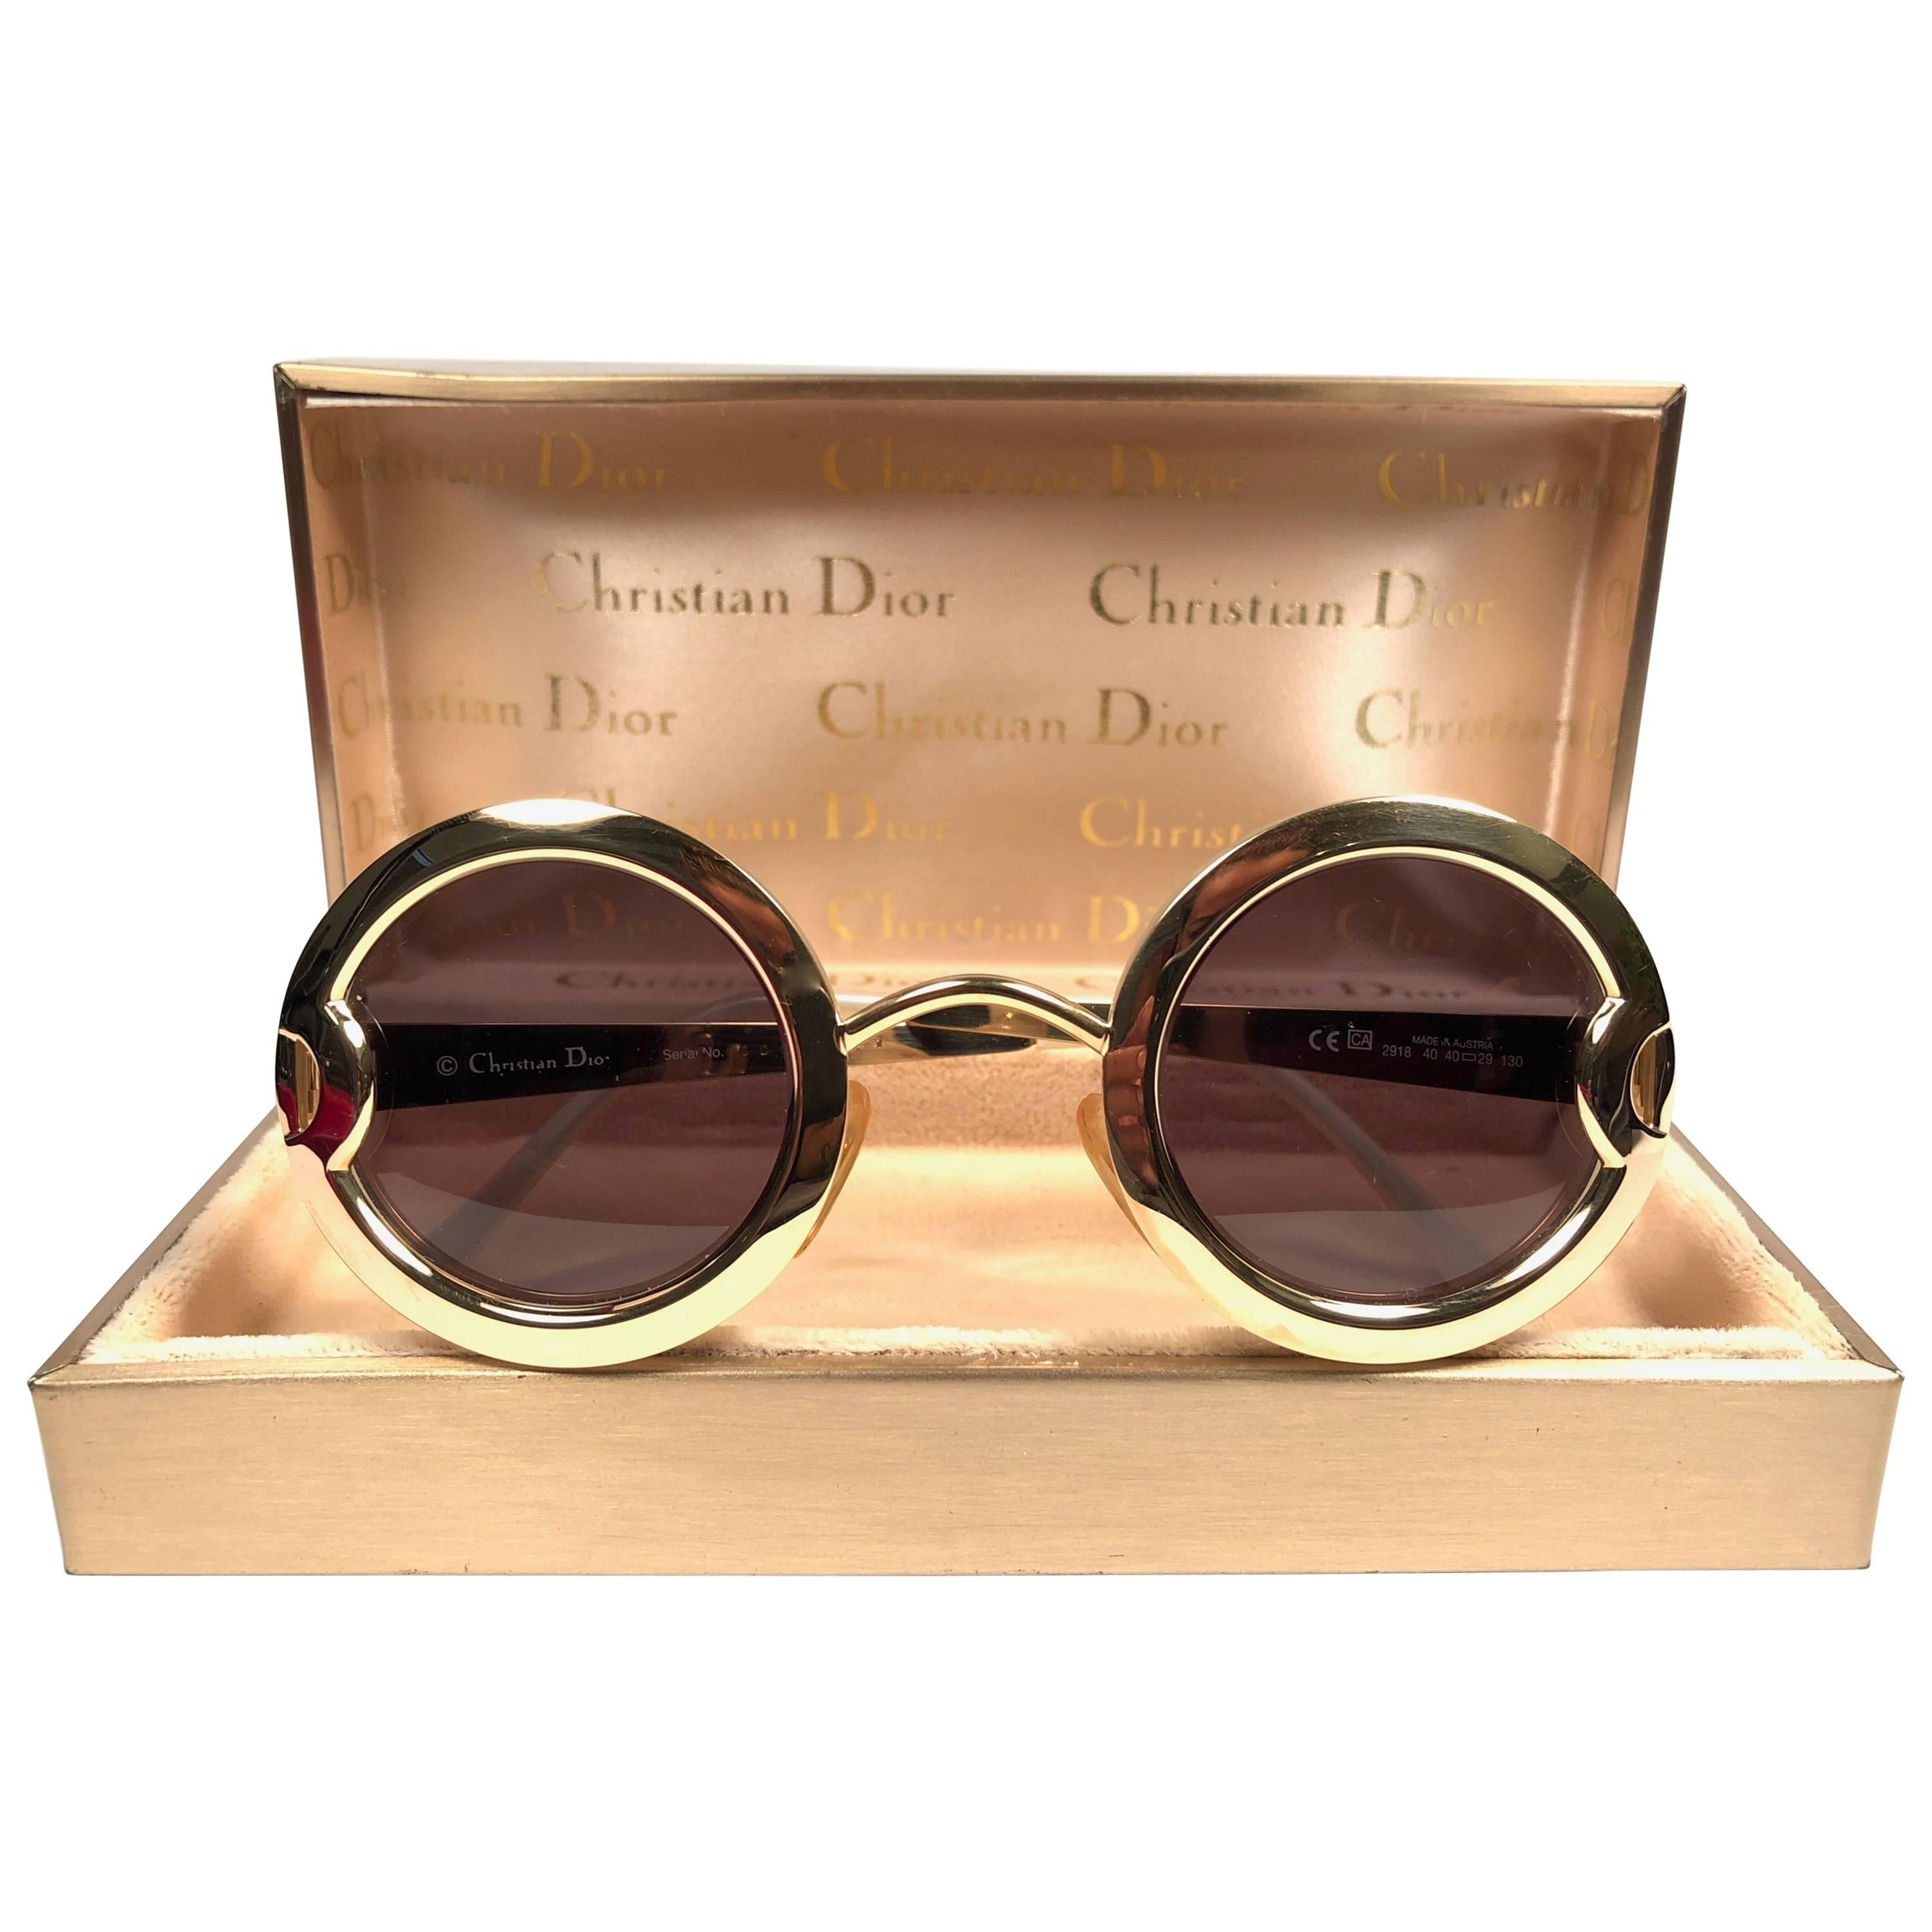 Christian Dior Limited Edition 2918 40 Round Gold Sunglasses, 1980s